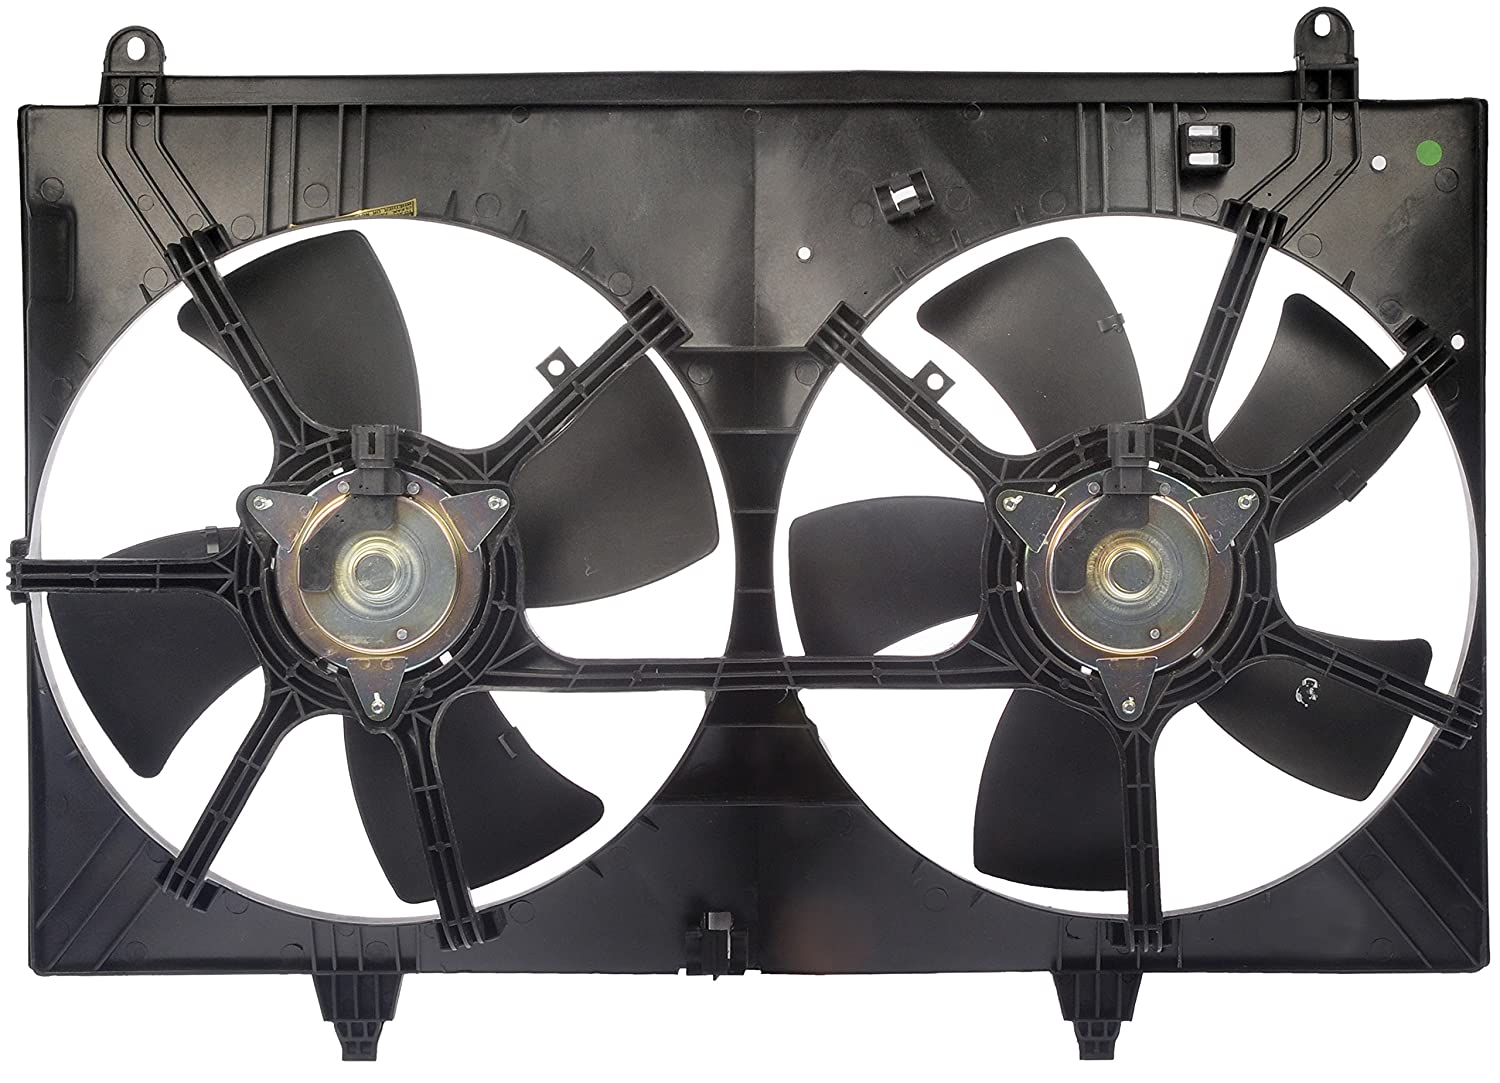 Dorman 620-423 Dual Fan Assembly for Infiniti FX35 Dorman - OE Solutions rm-DOR-620-423